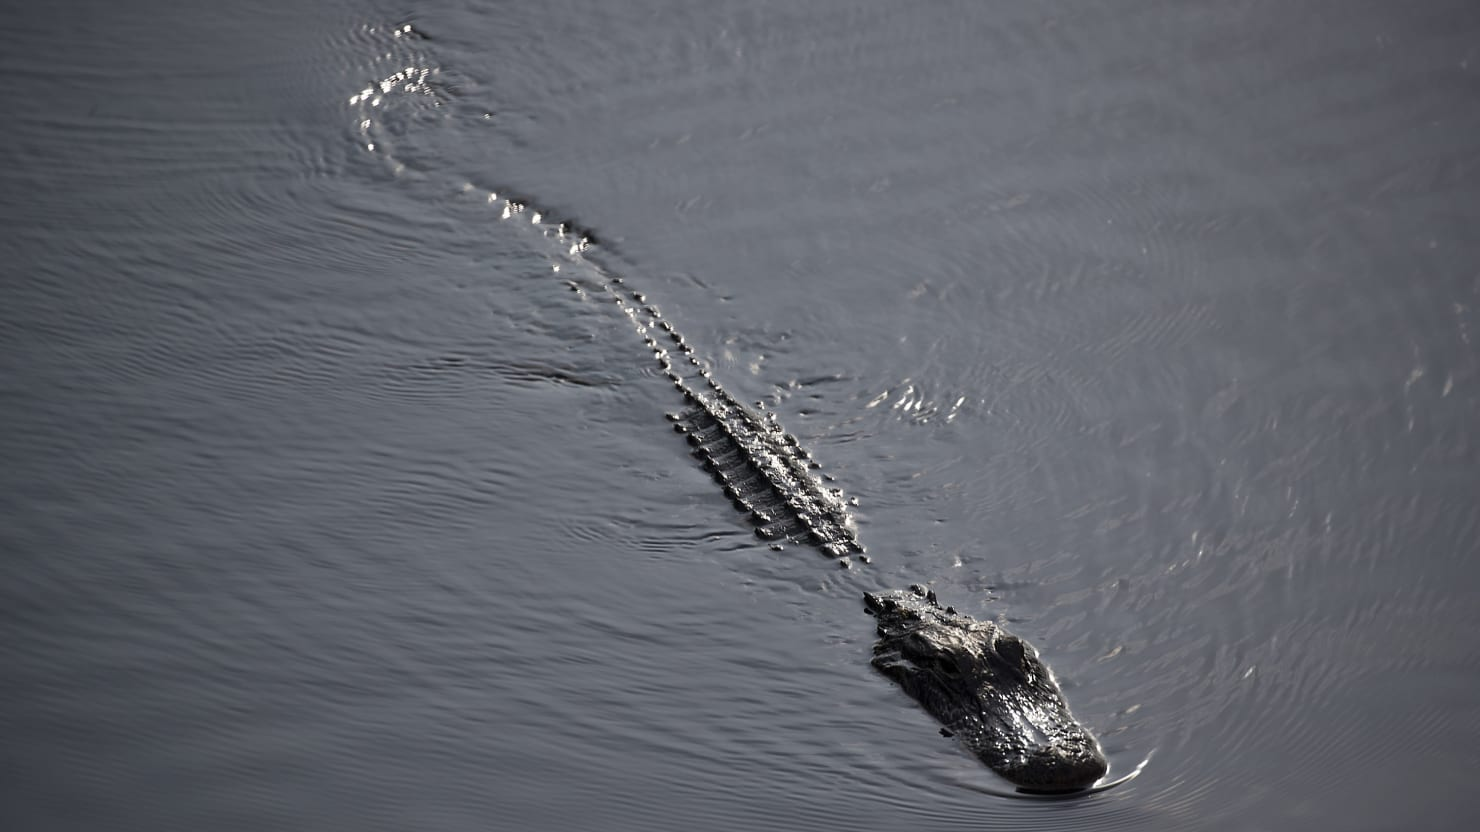 Florida Woman Suffers 'Significant' Injuries in Alligator Attack